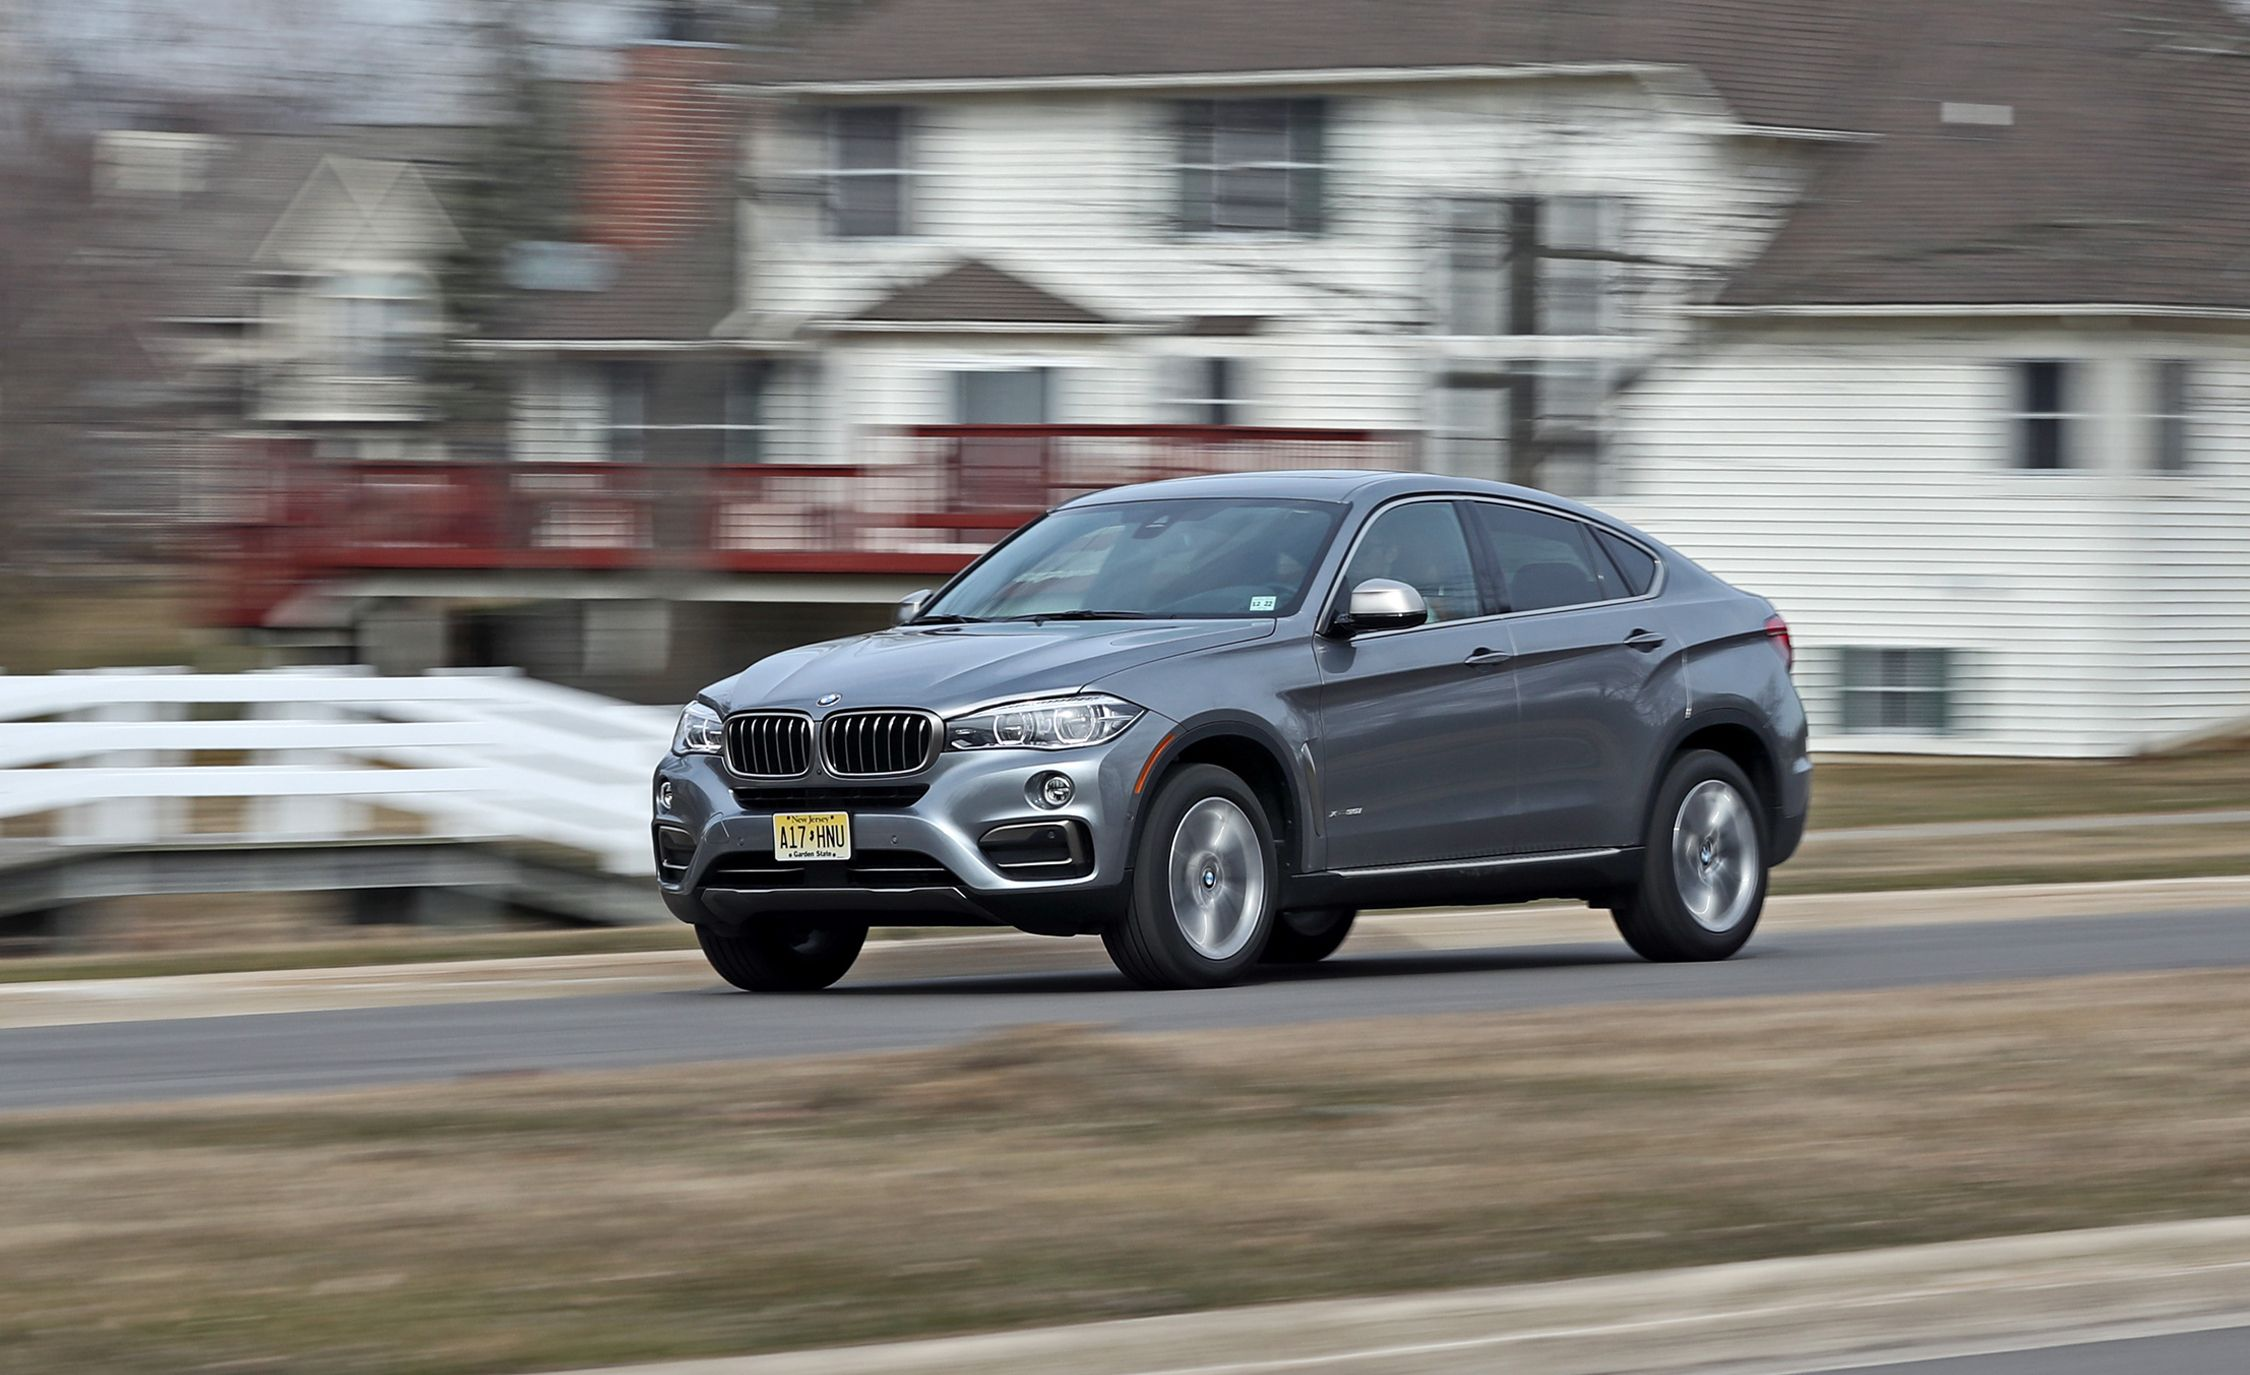 2019 Bmw X6 Reviews Price Photos And Specs Car Driver Go Back Gt Gallery For Circuit Board Design Blue